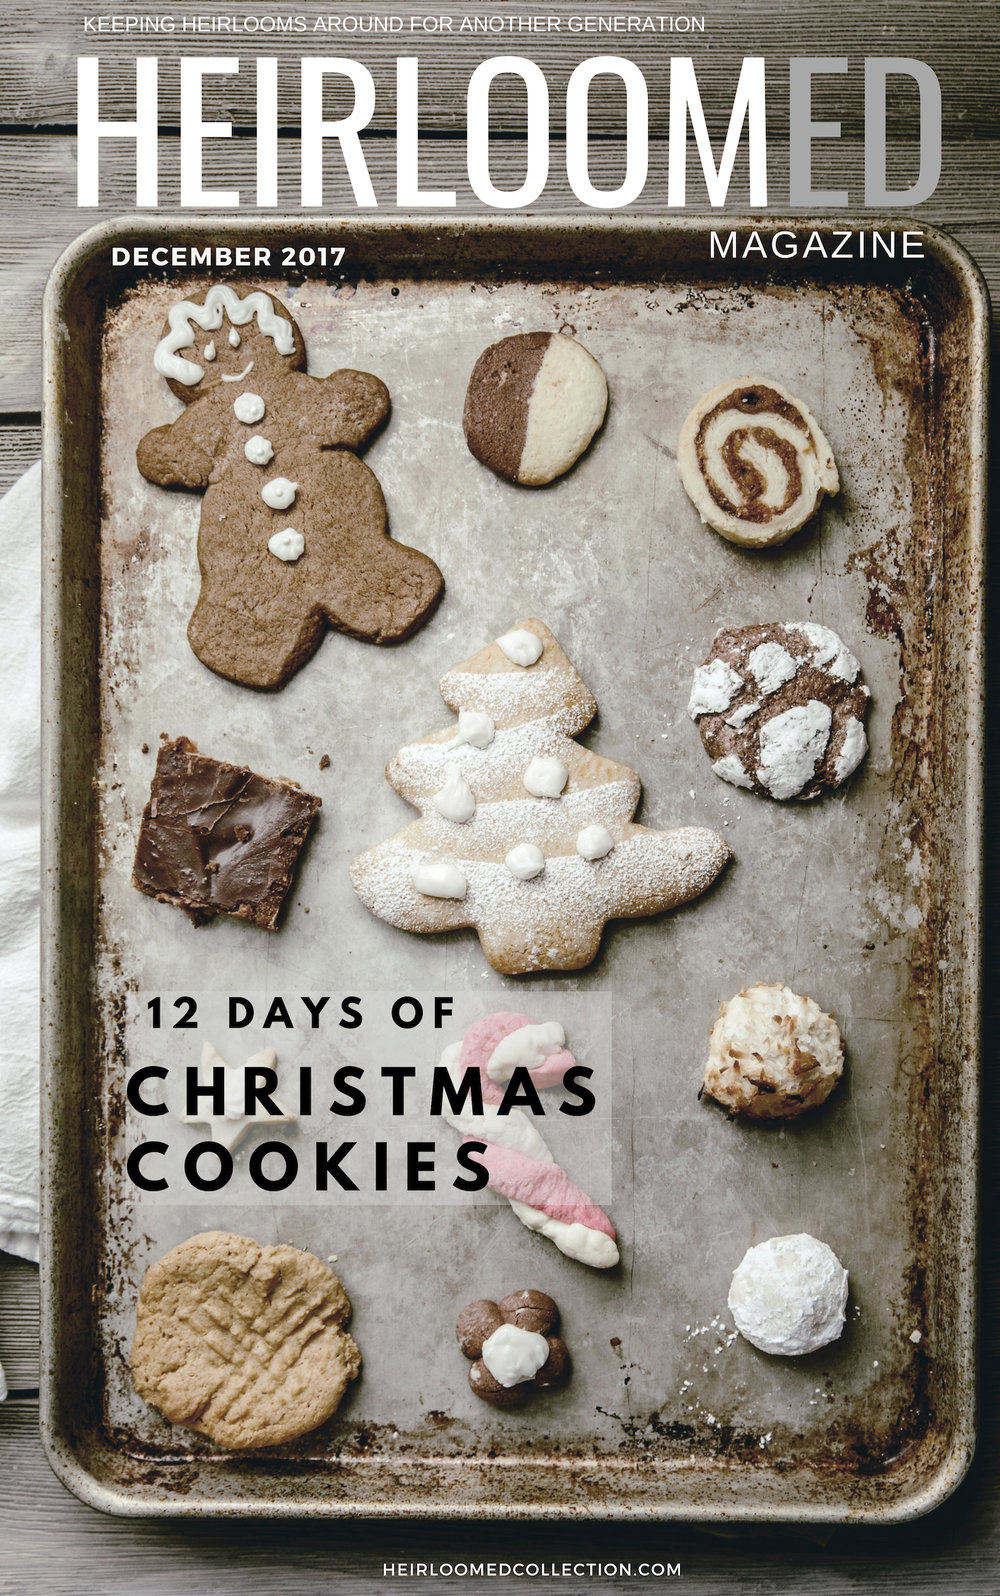 12 days of christmas cookie recipes / free ebook download / heirloomed